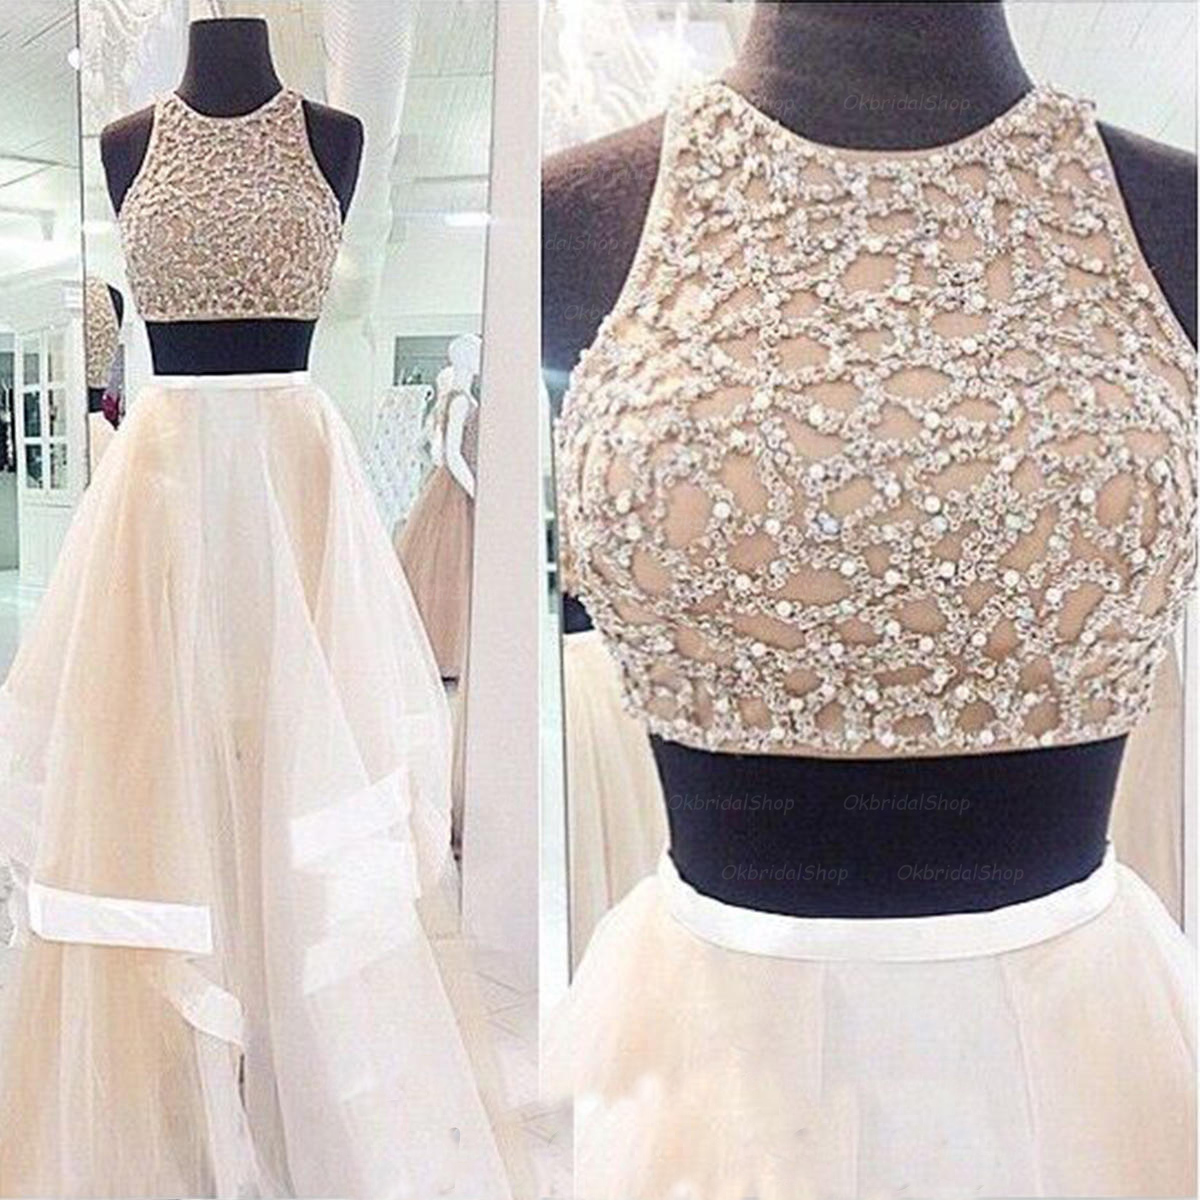 Charming Prom Dress,Sexy 2 Piece Style Prom Dress,A-Line Prom Dress,High Neck Prom Dress,Tulle Prom Dress,PD1700494